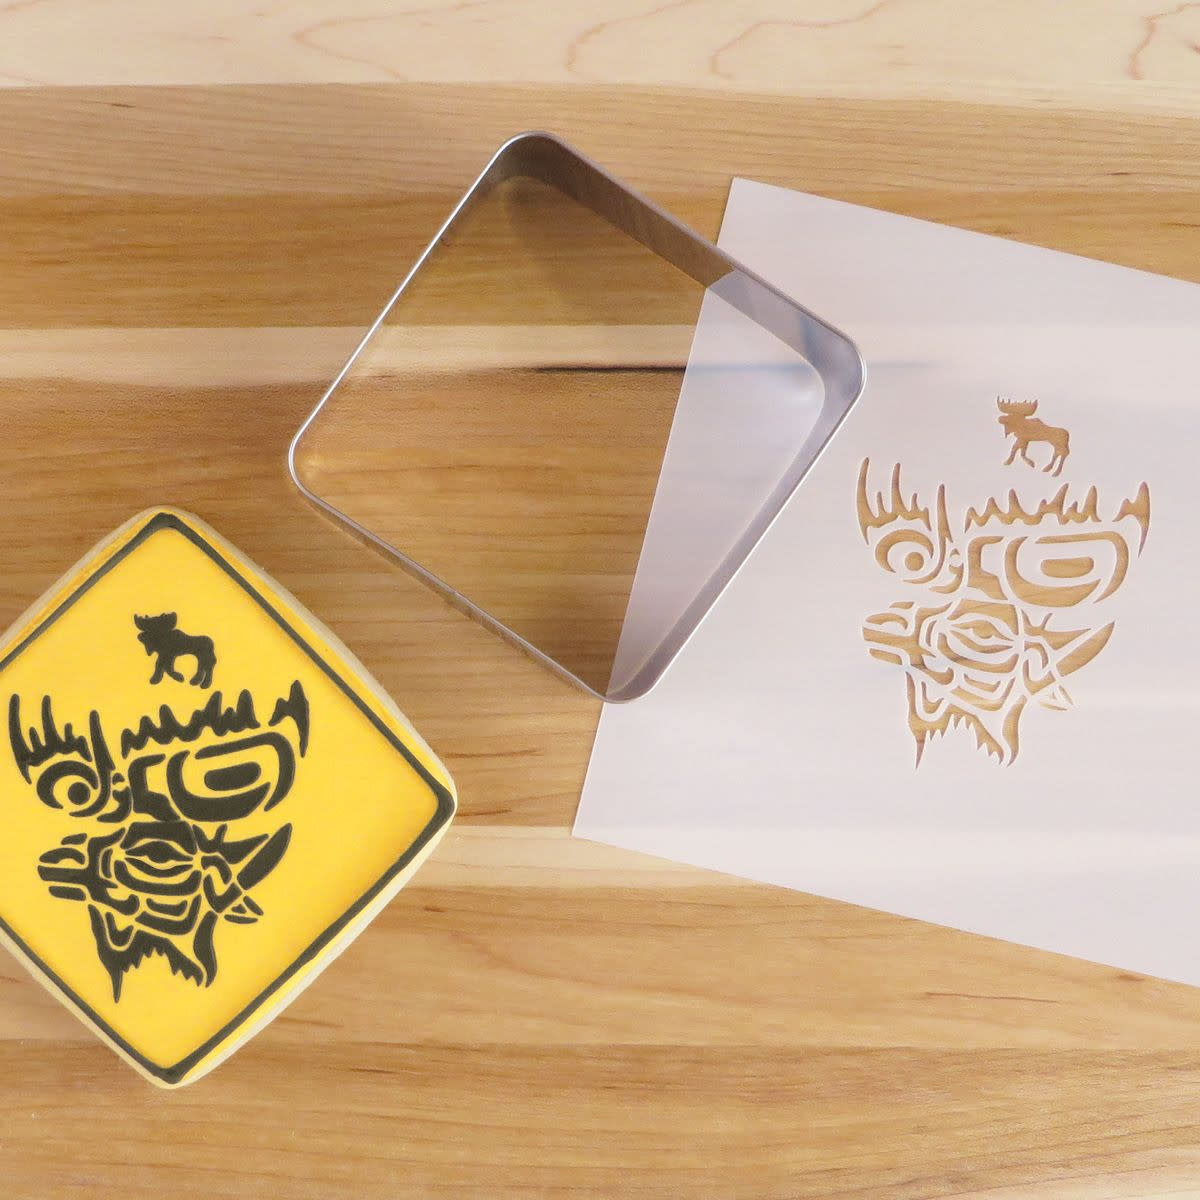 Cookie Cutter & Stencil Set-Moose Crossing by Terry Star-2